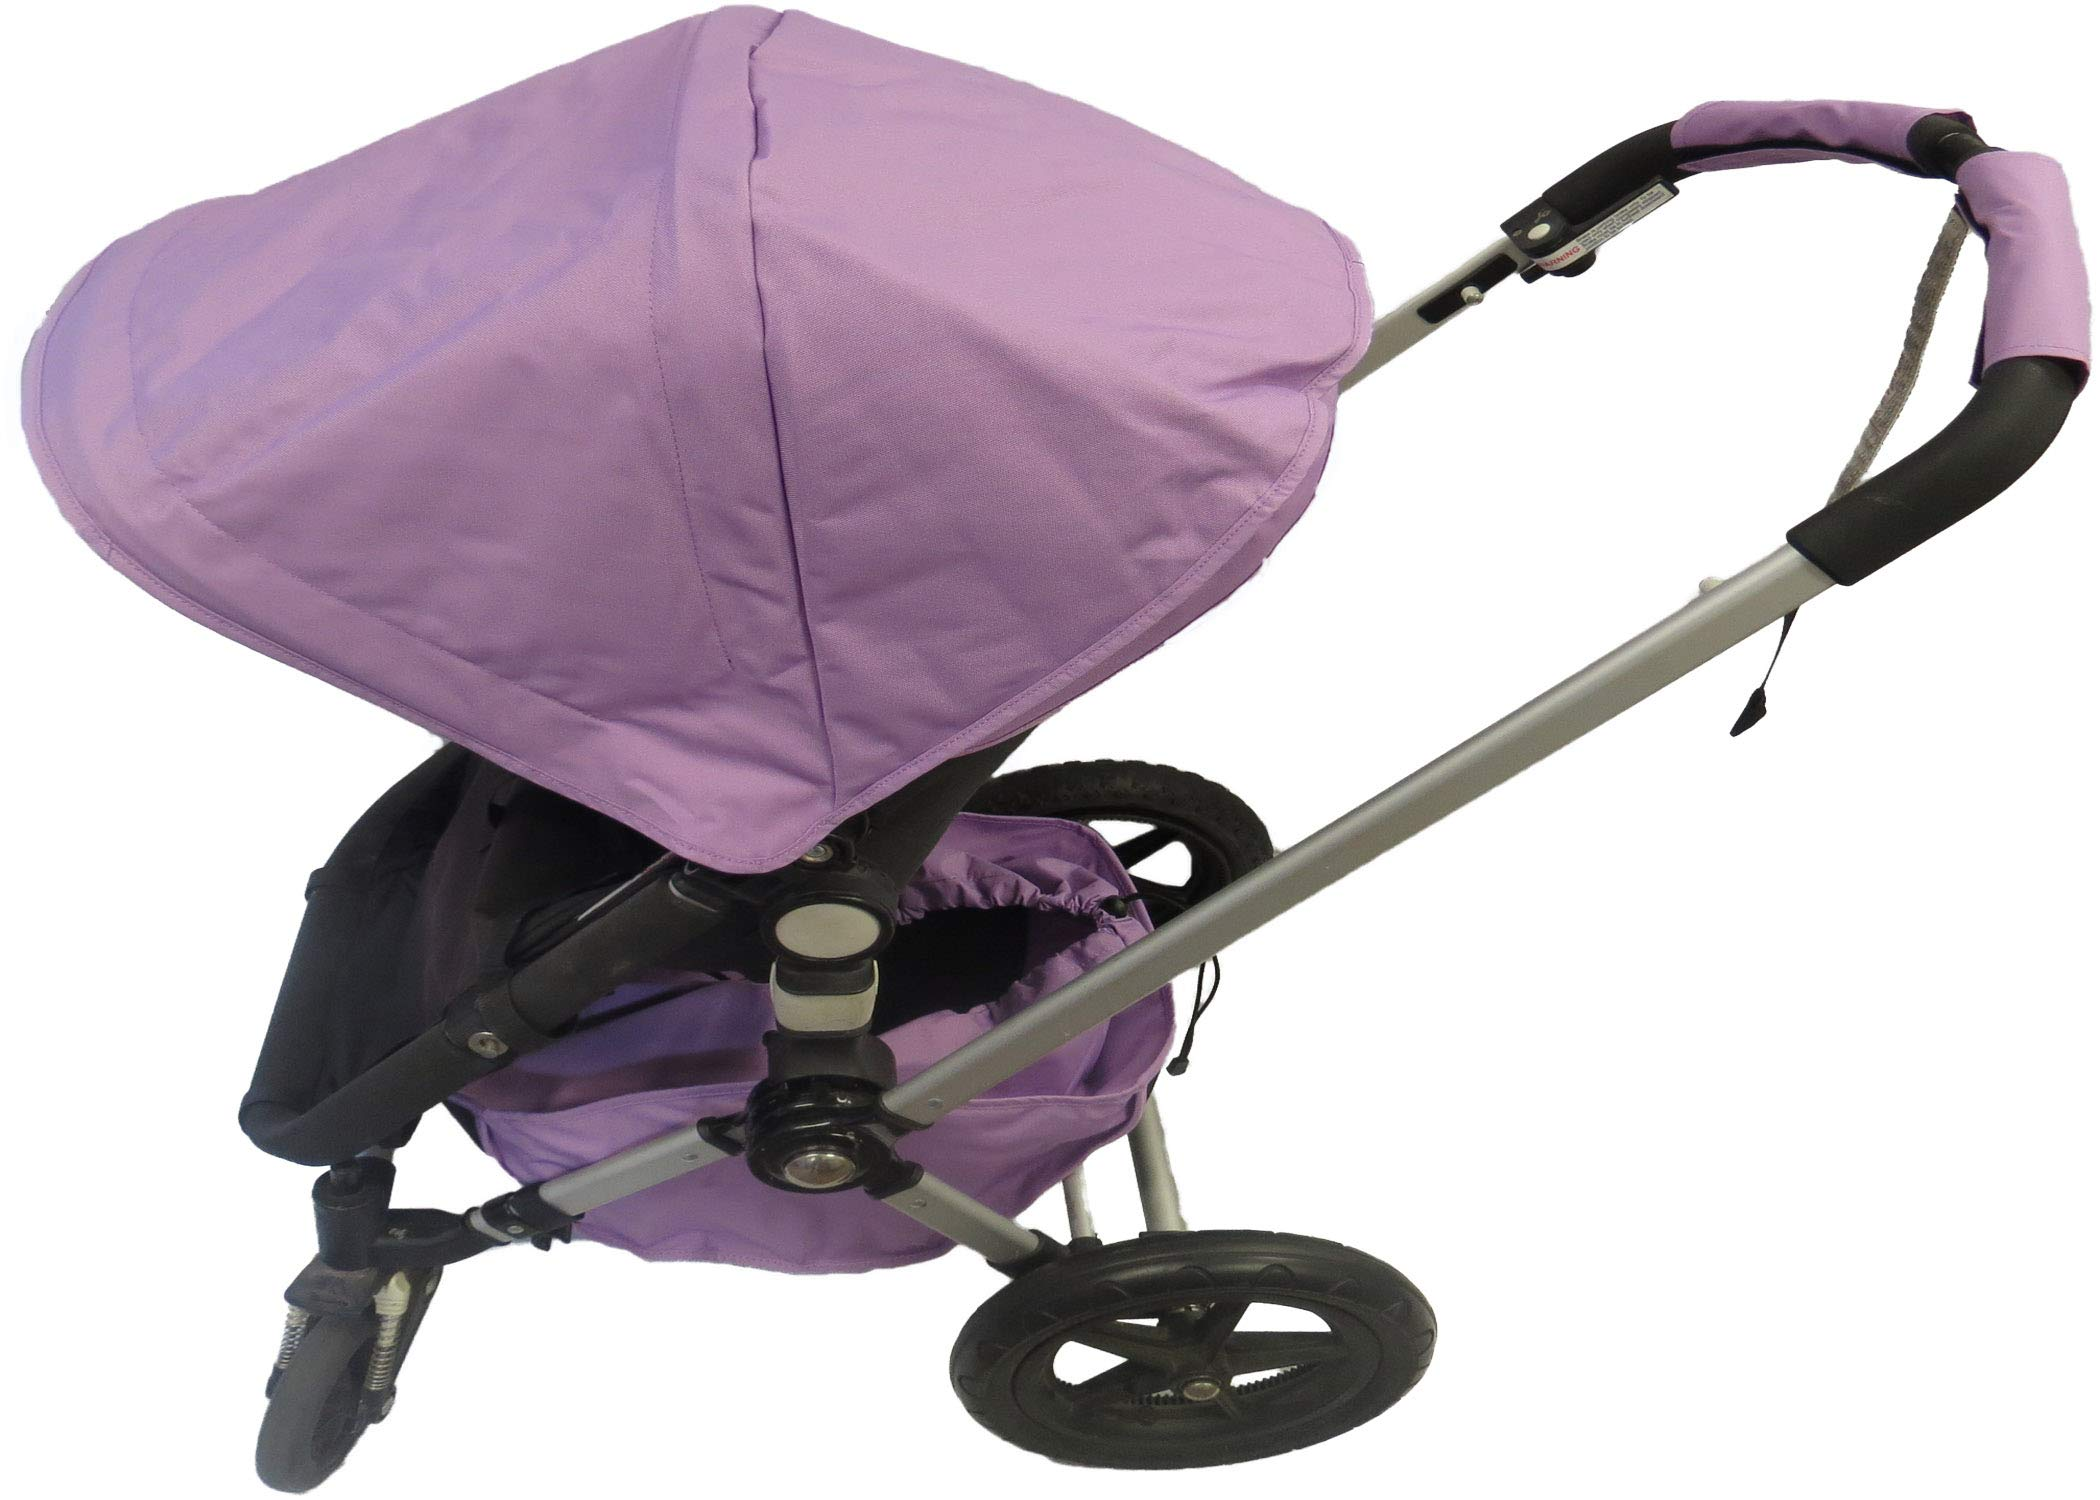 Light Purple Sun Shade Canopy Wires and Large Under Seat Storage Basket Plus Free Handle Bar Covers for Bugaboo Cameleon 1, 2, 3, Frog Baby Child Strollers by Ponini (Image #1)